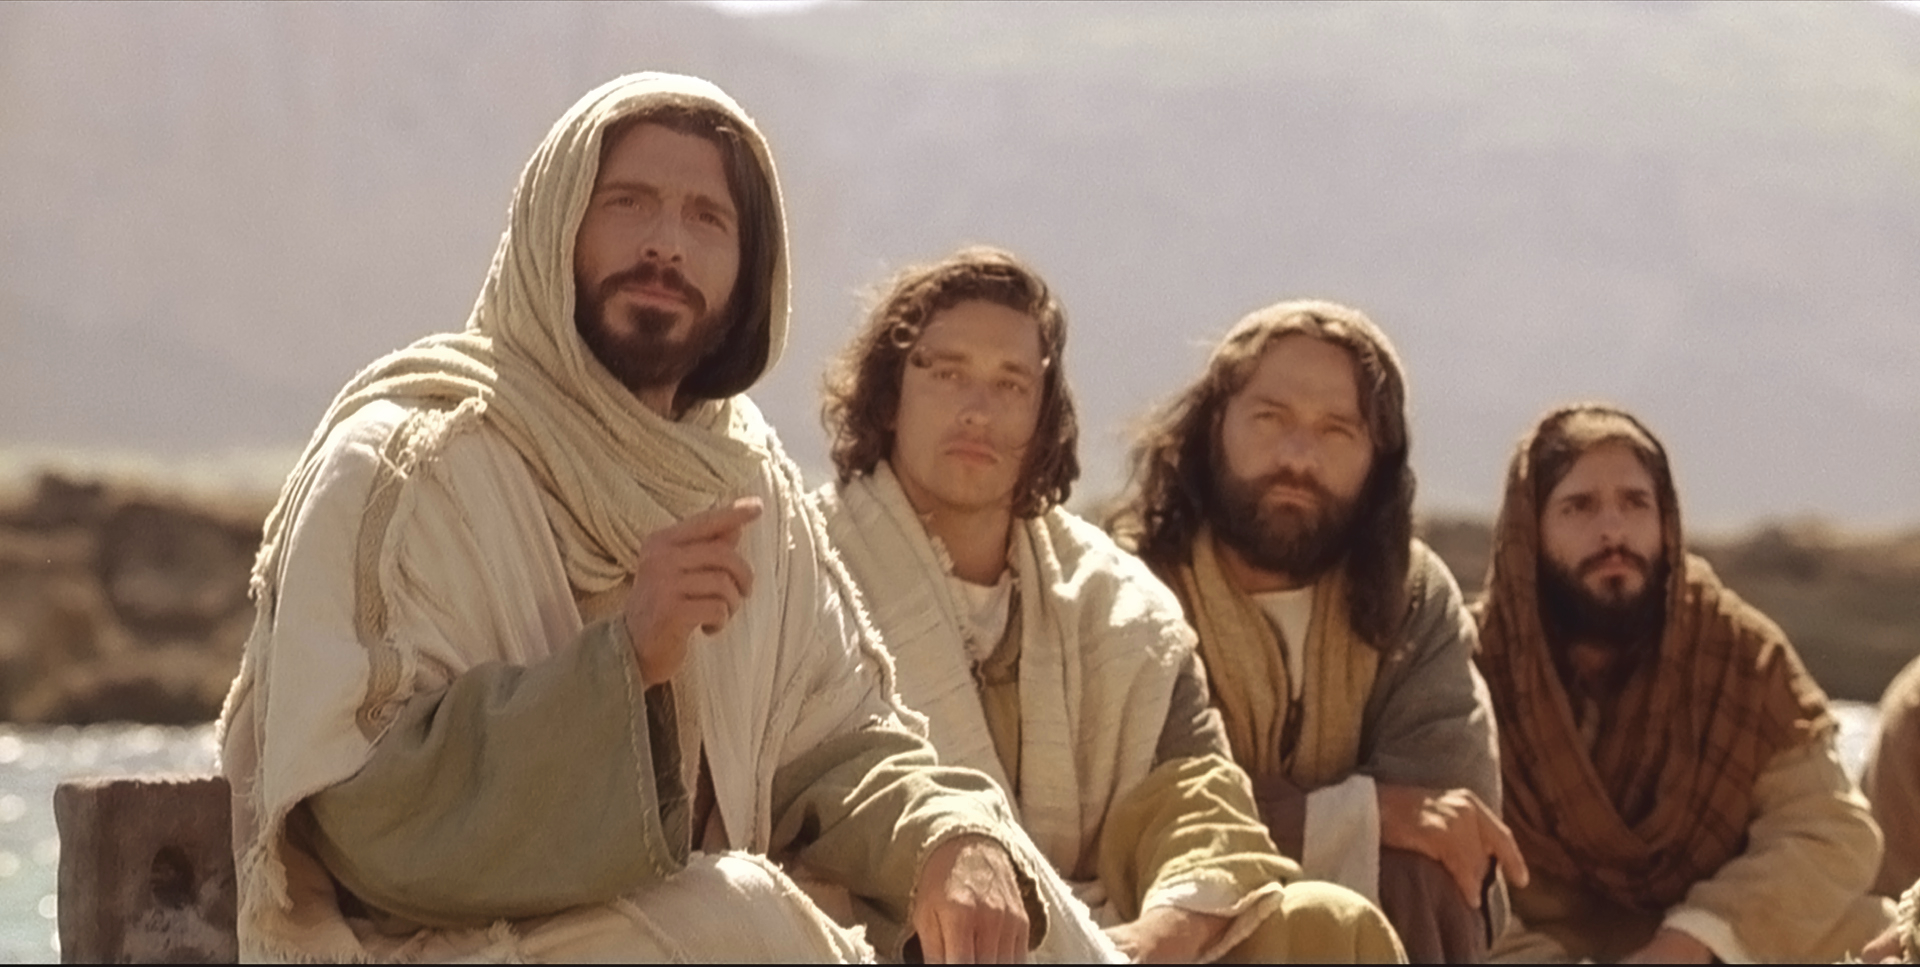 While on a ship, Jesus teaches parables to listeners on shore.